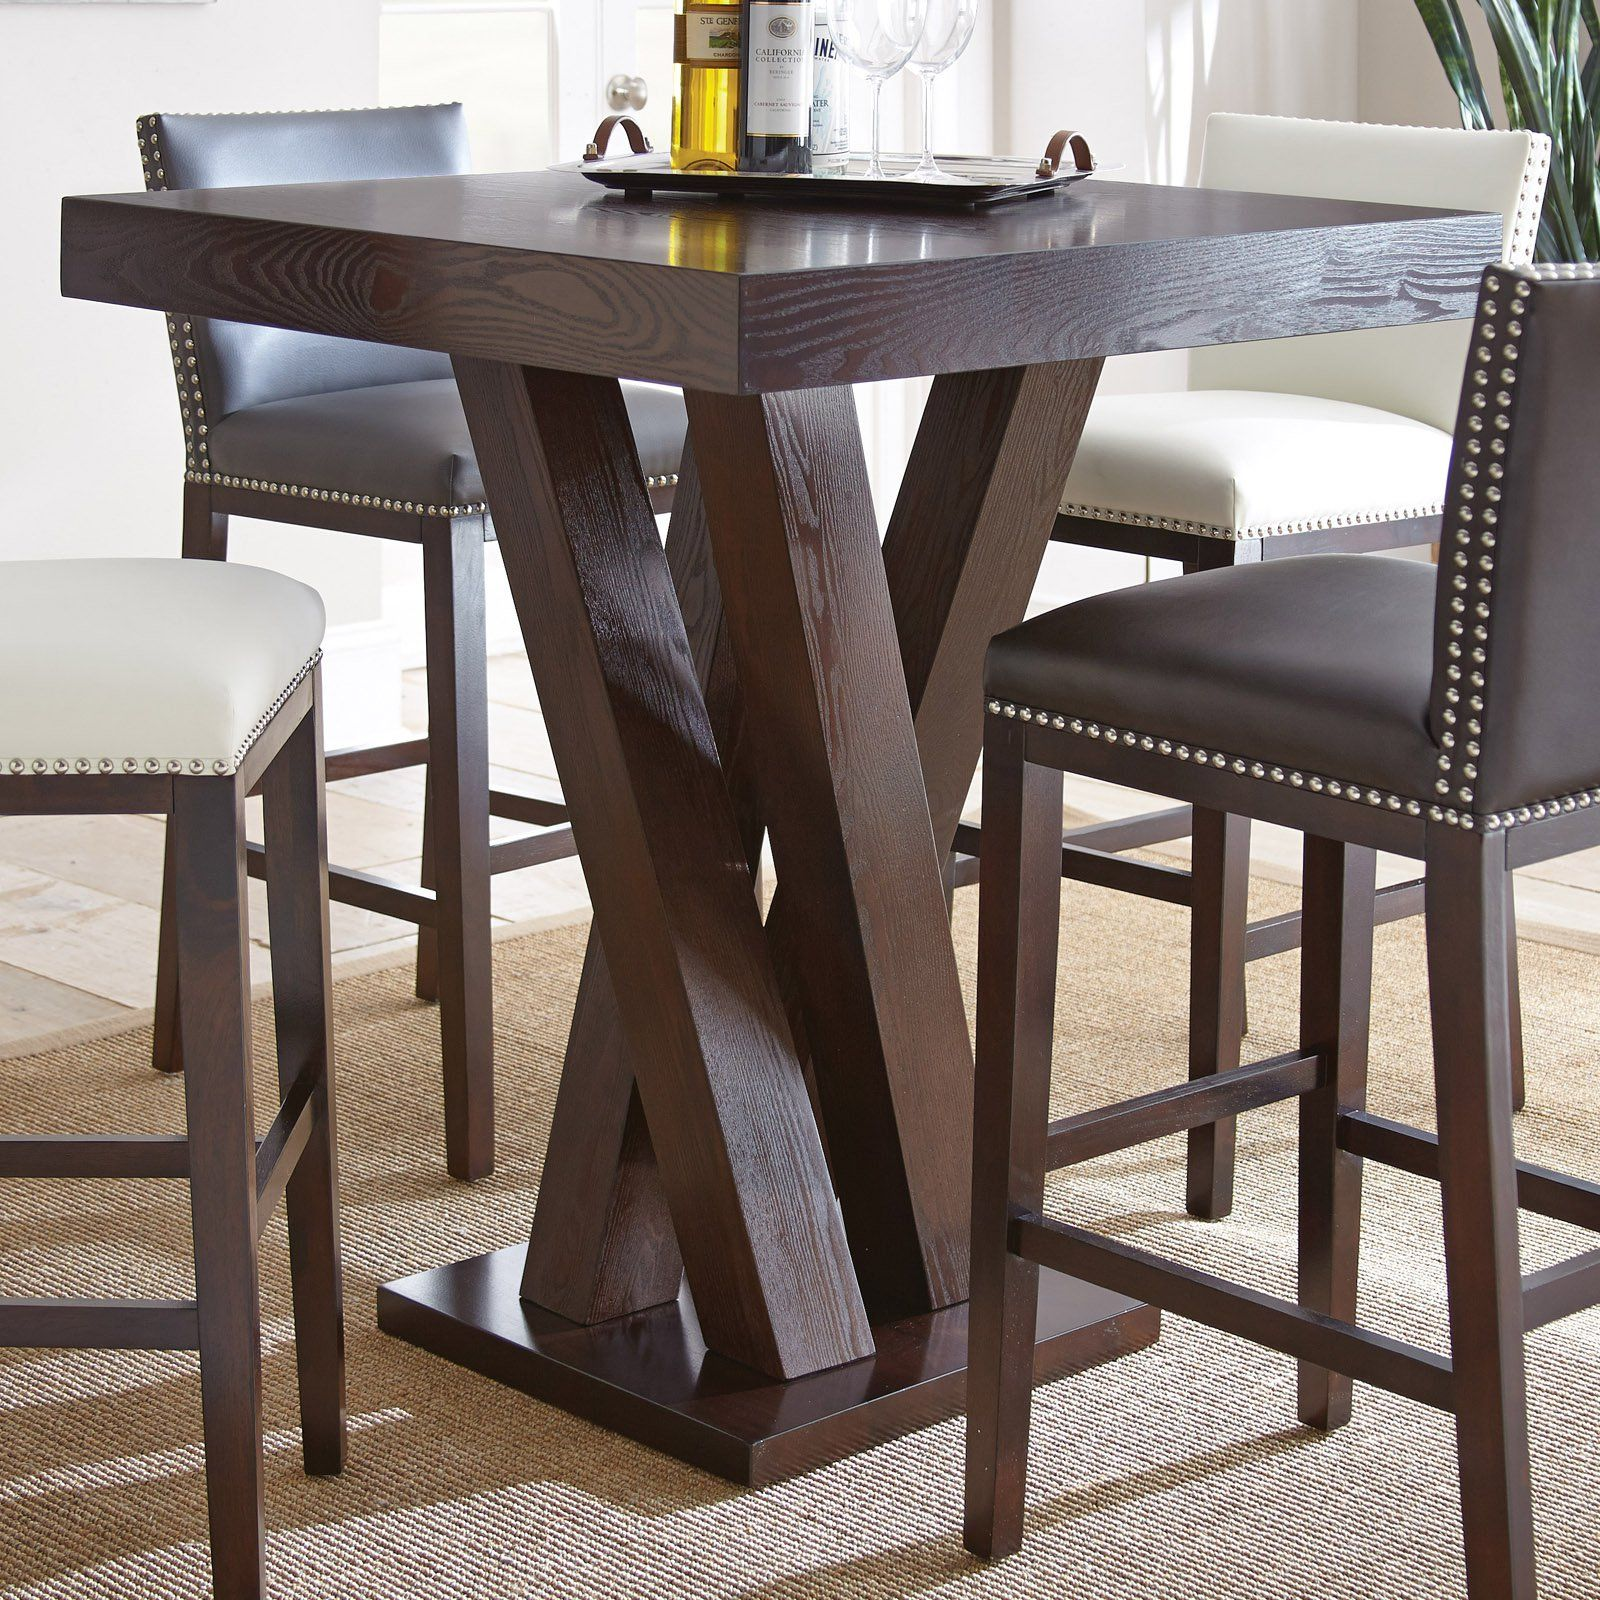 Bar Stools And Tables: Steve Silver Tiffany Square Bar Height Table